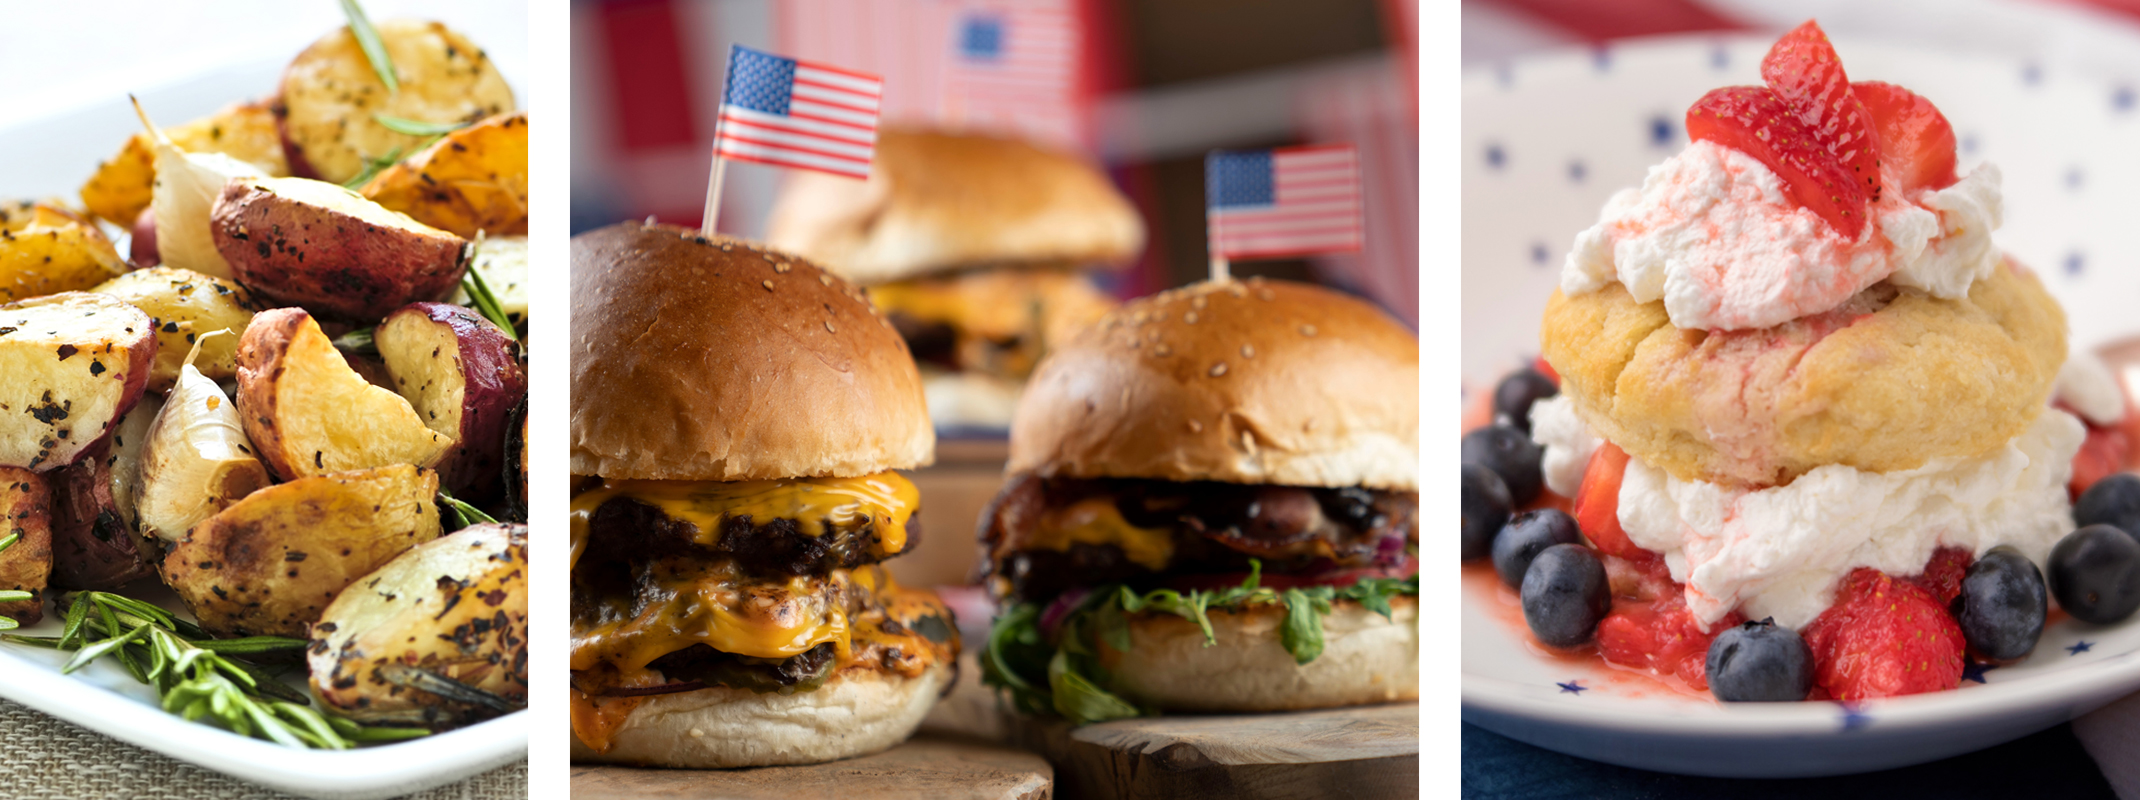 Roasted herb potatoes, grilled burgers for 4th of July with little flag toothpicks, red, white and blue shortcake dessert made with strawberries and blueberries